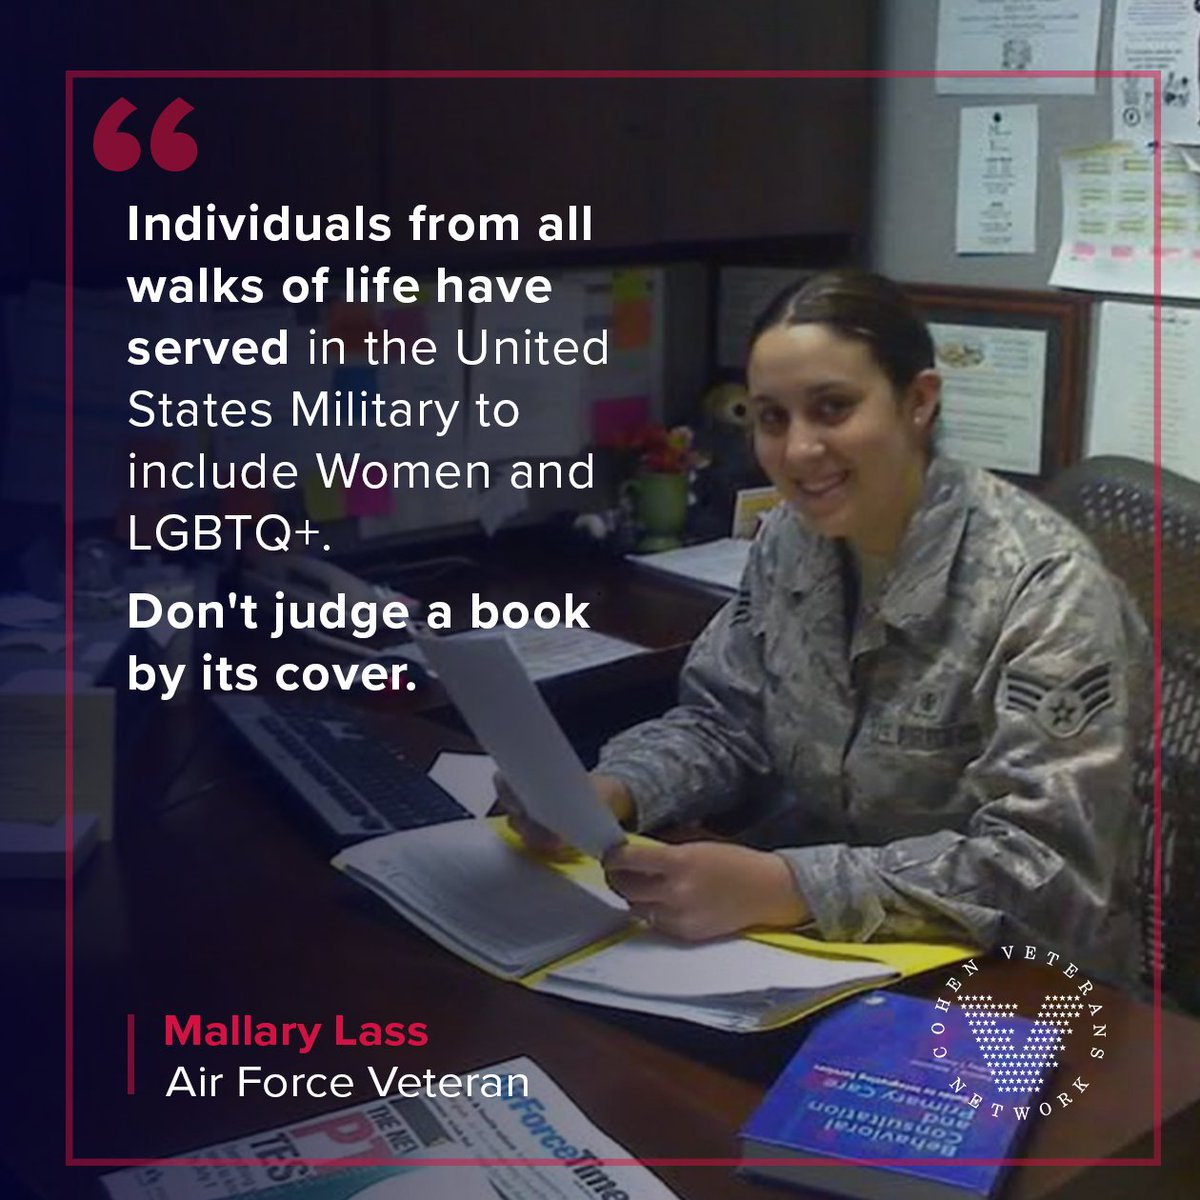 """""""How can you show appreciation for those who served?   Recognize ALL veterans. Mallary, Air Force veteran and Outreach Manager for our Cohen Clinic at Easterseals, reminds us that veterans come from all walks of life.   #VeteransDay #BeyondTheThankYou"""""""